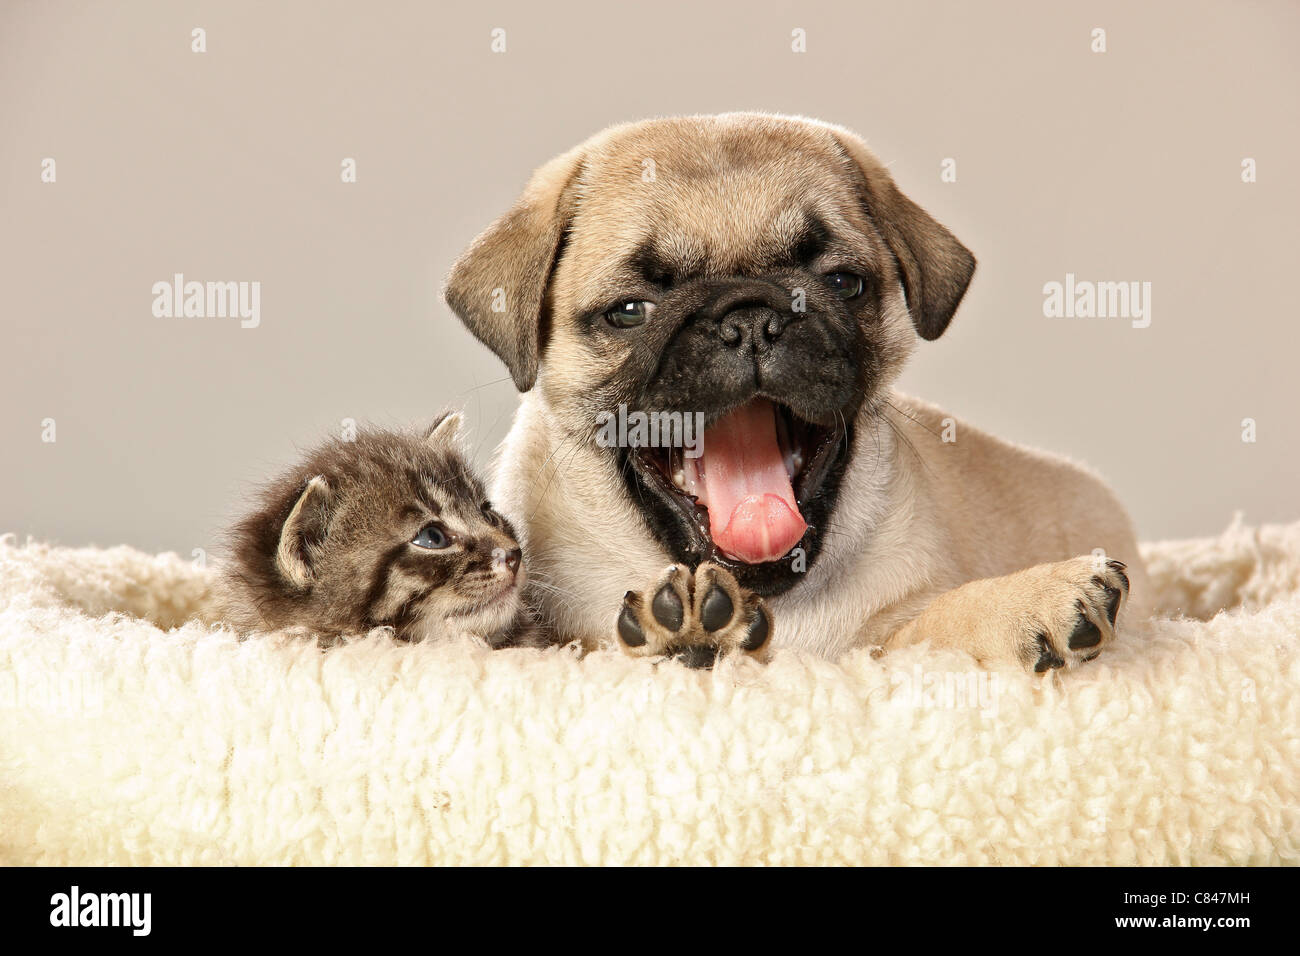 animal friendship : kitten and pug puppy - Stock Image